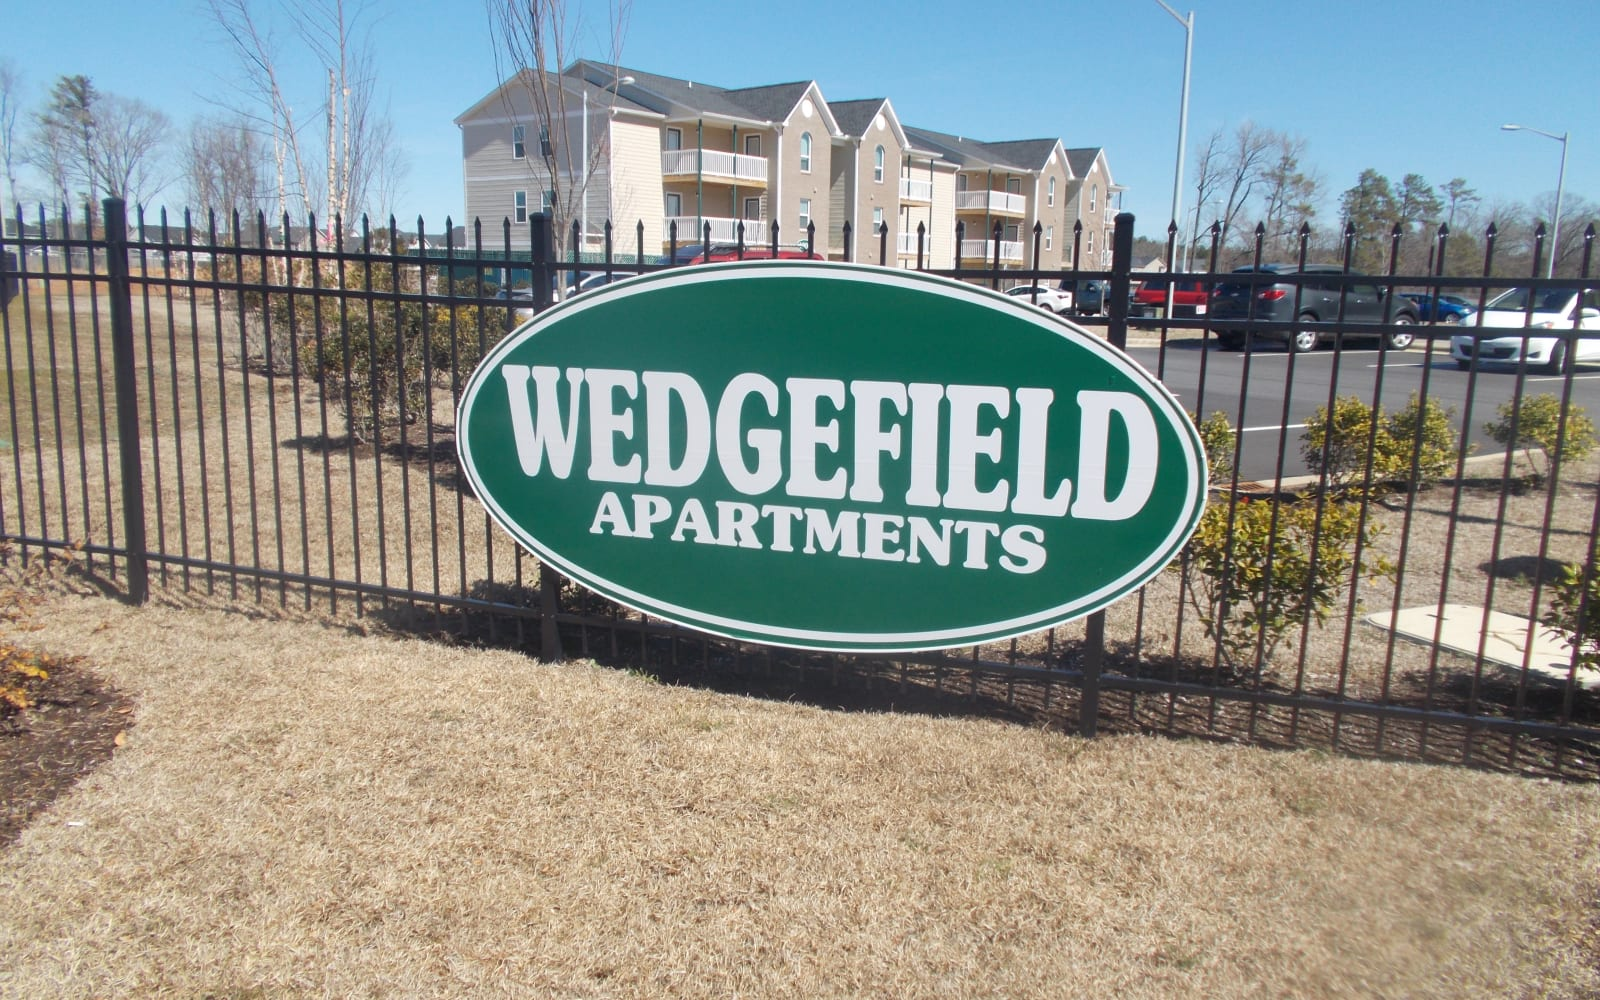 Sign outside of the new building at Wedgefield Apartments in Raeford, North Carolina